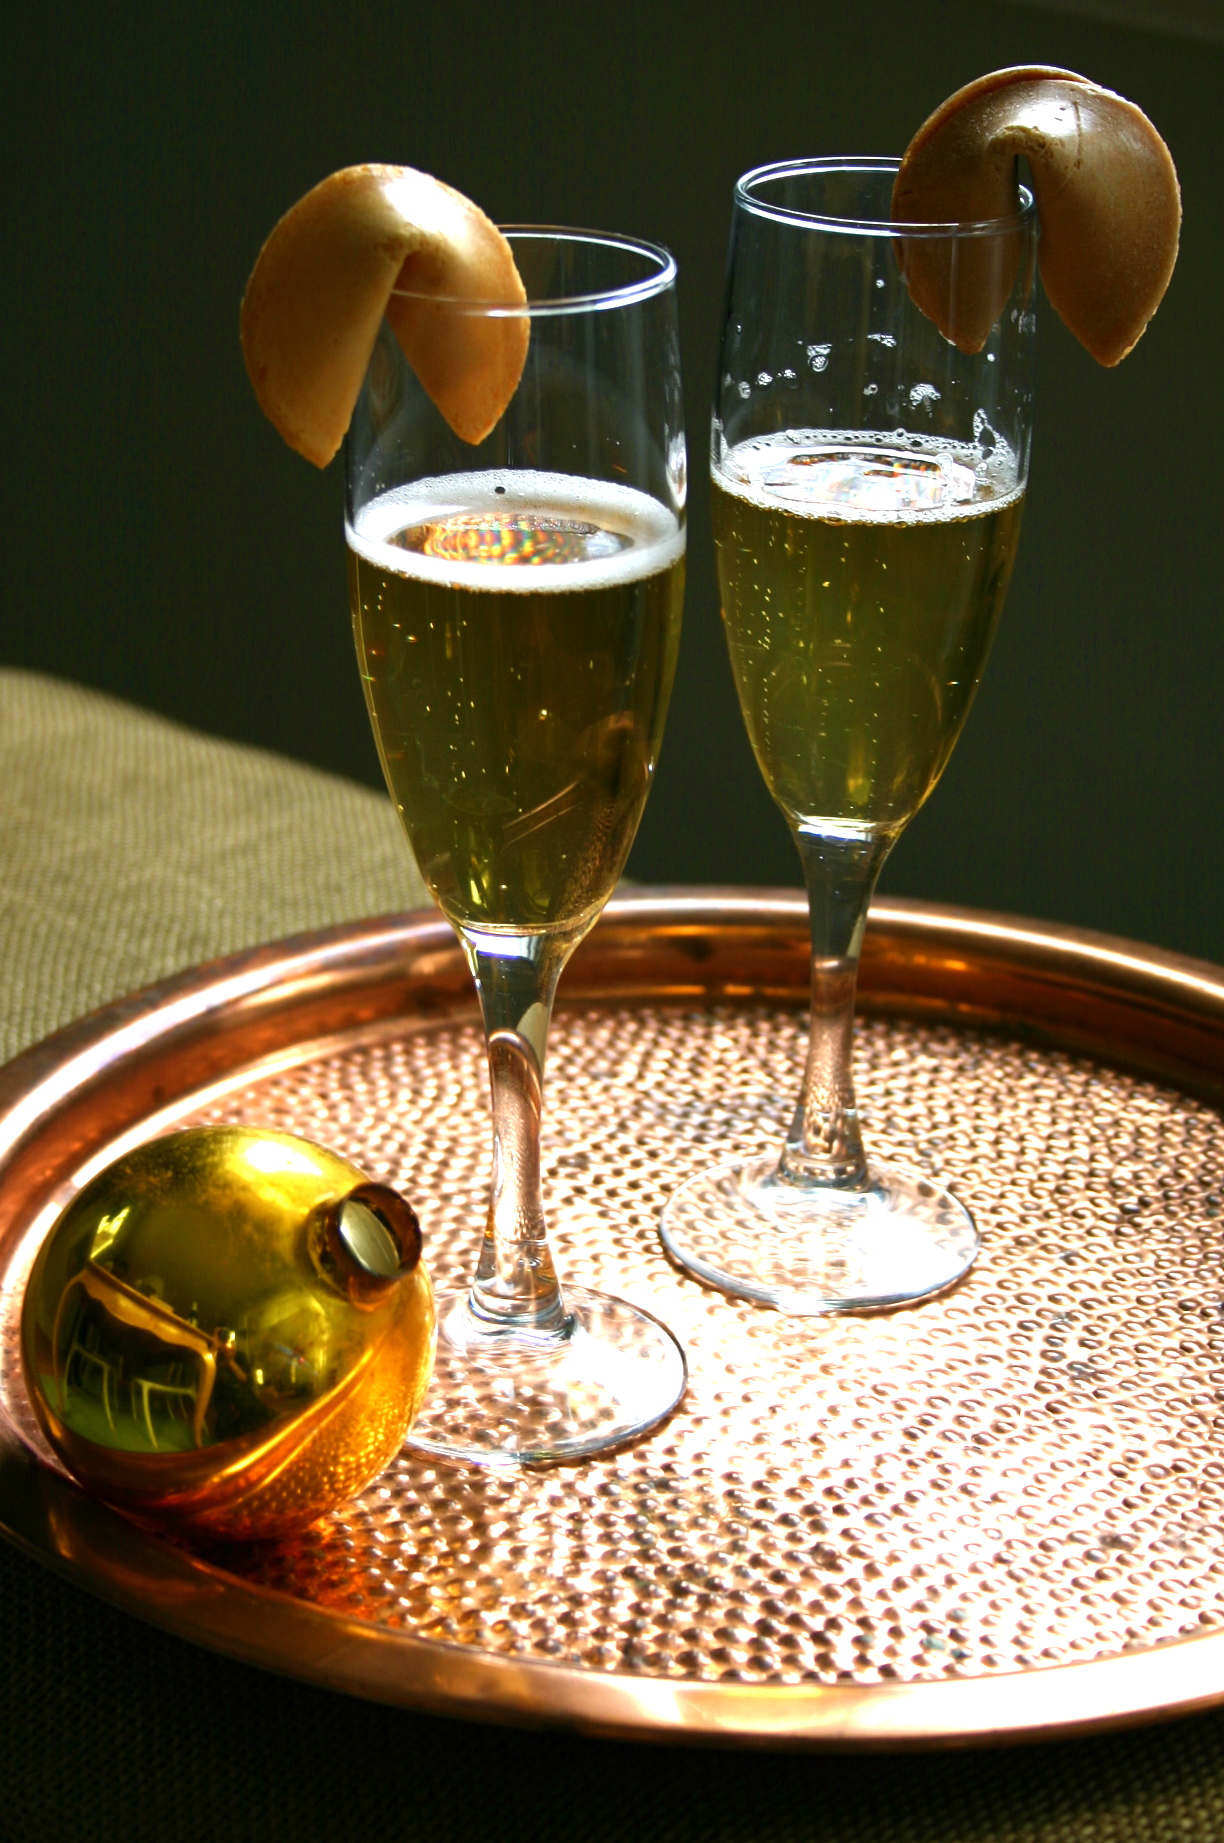 Something different at midnight - try perching a fortune cookie on the rim of your champagne flute this New Year's Eve. I did this with sparkling apple cider and my kids loved it.